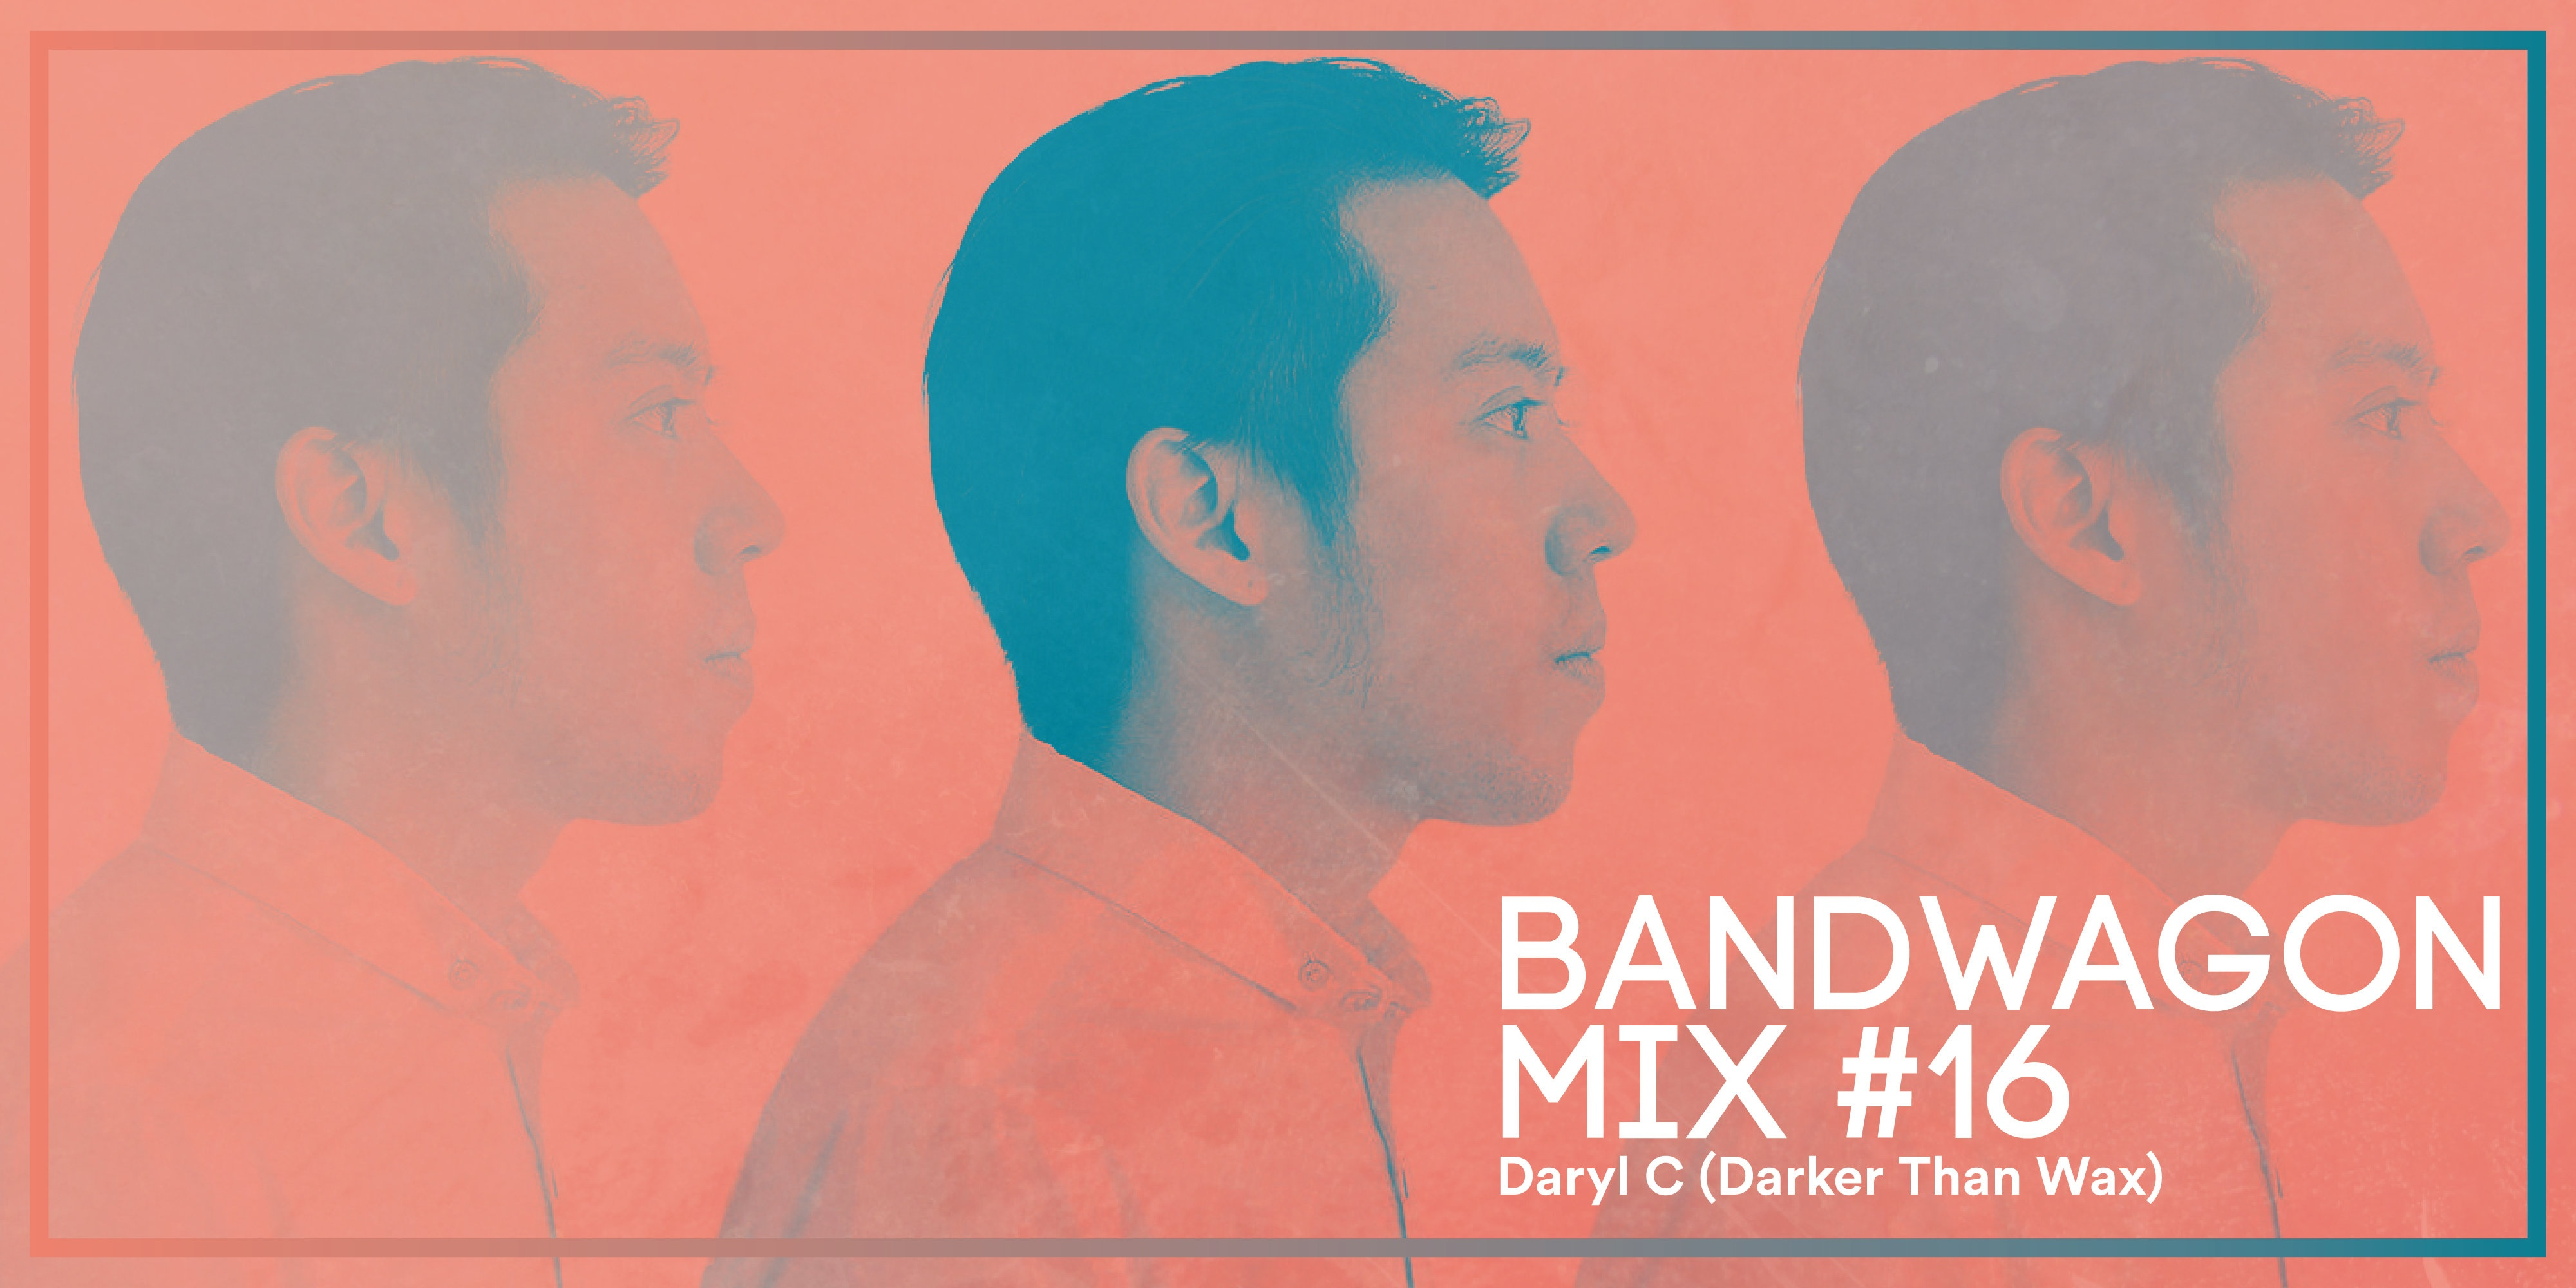 Bandwagon Mix #16: Daryl C (Darker Than Wax)